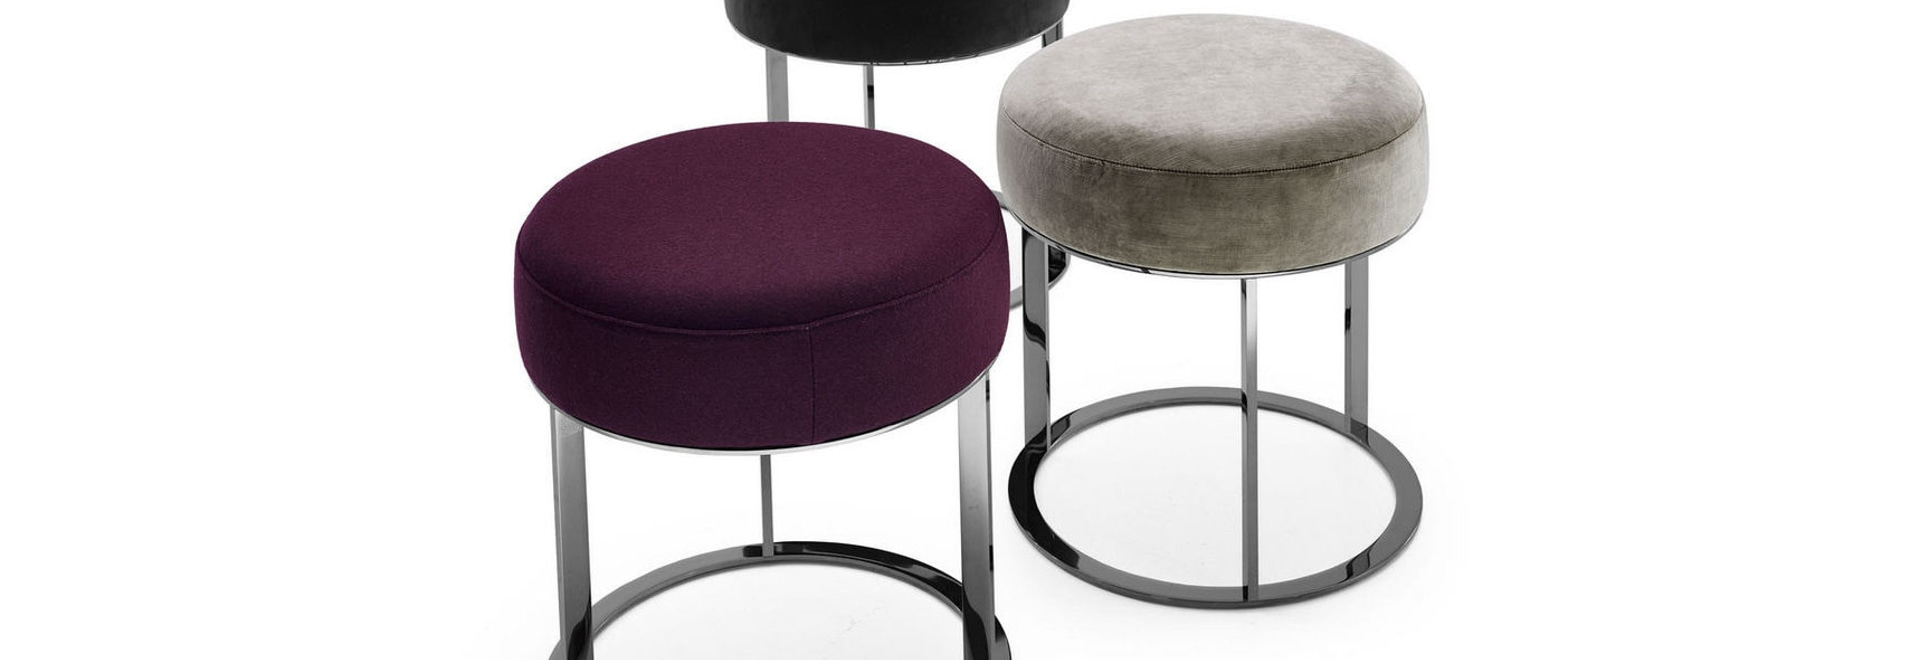 NEW: contemporary stool by B&B Italia